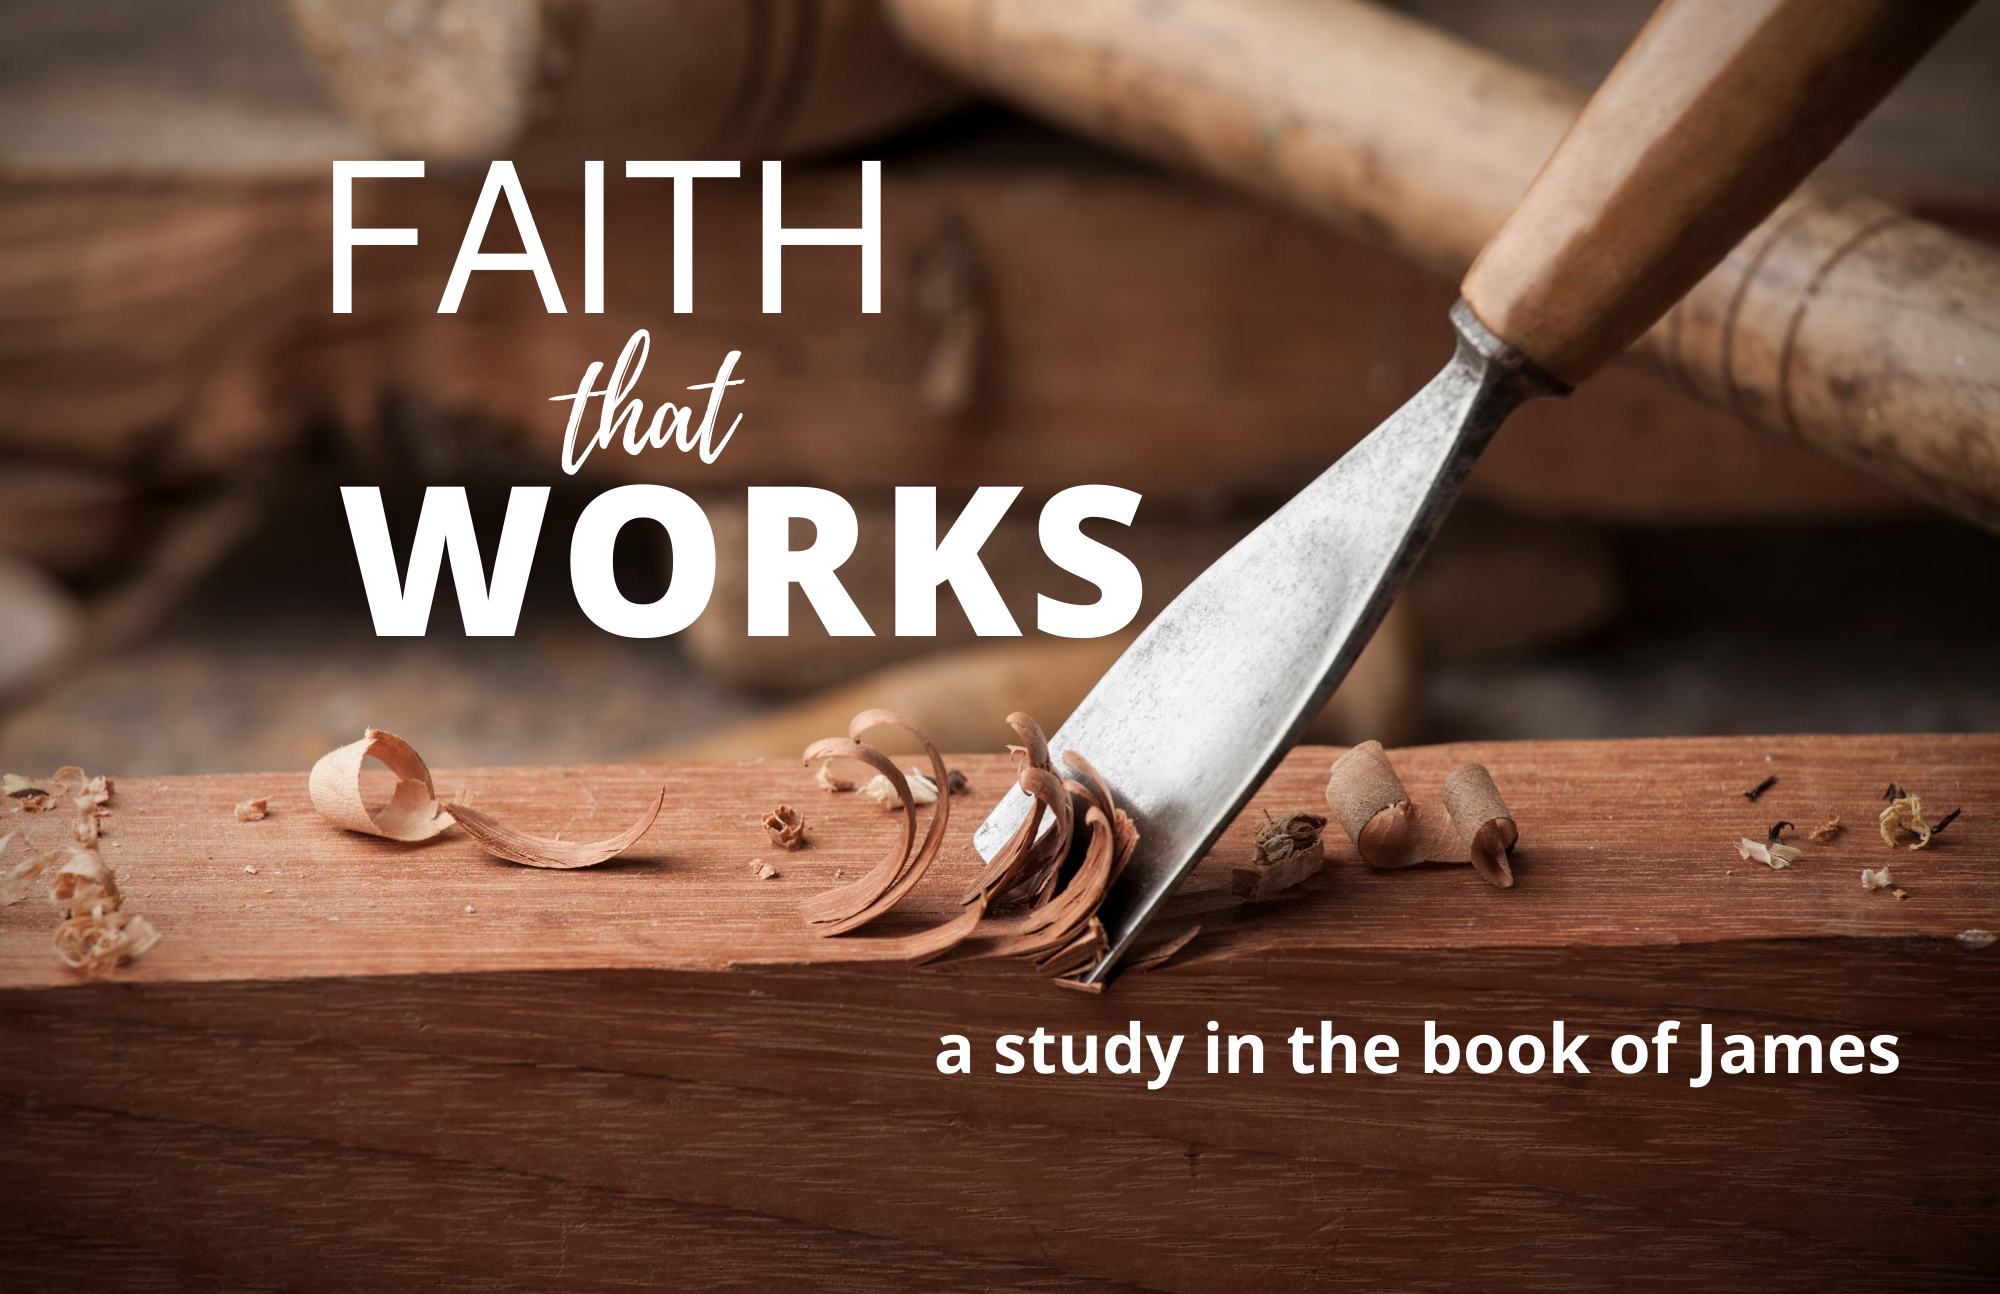 Faith that Works at the Right Time